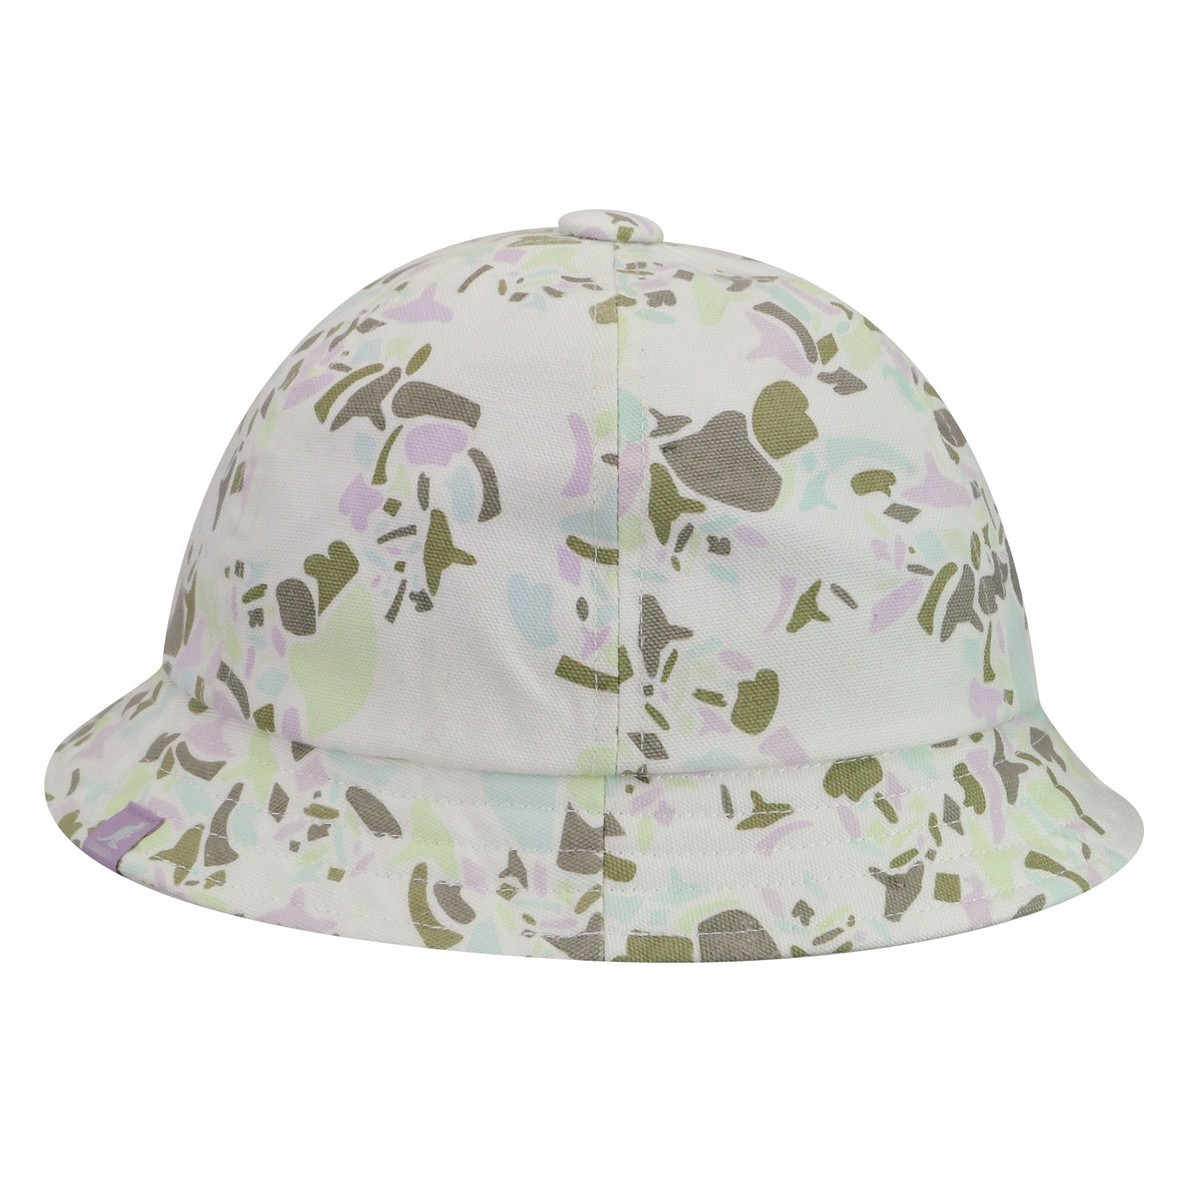 Kangol カンゴール Cloisonne Casual Bucket Hat White バケットハット 帽子 White